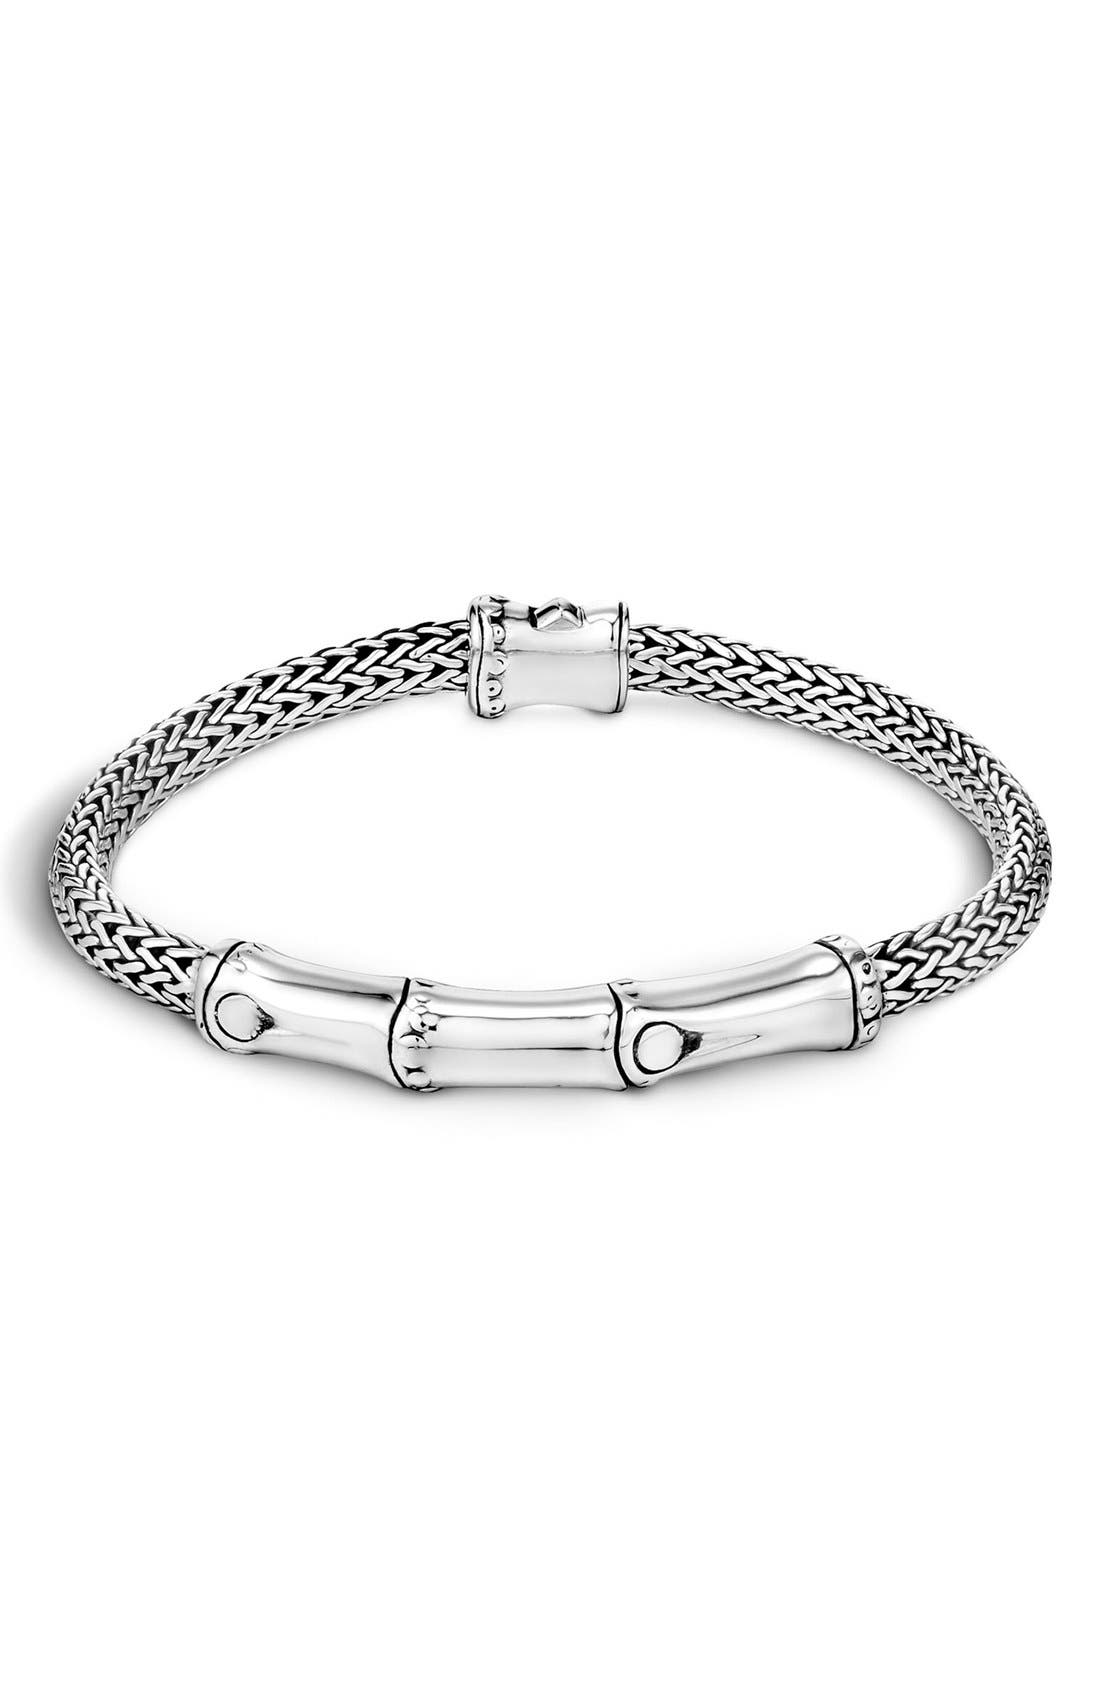 Bamboo 4mm Bracelet,                         Main,                         color, Sterling Silver